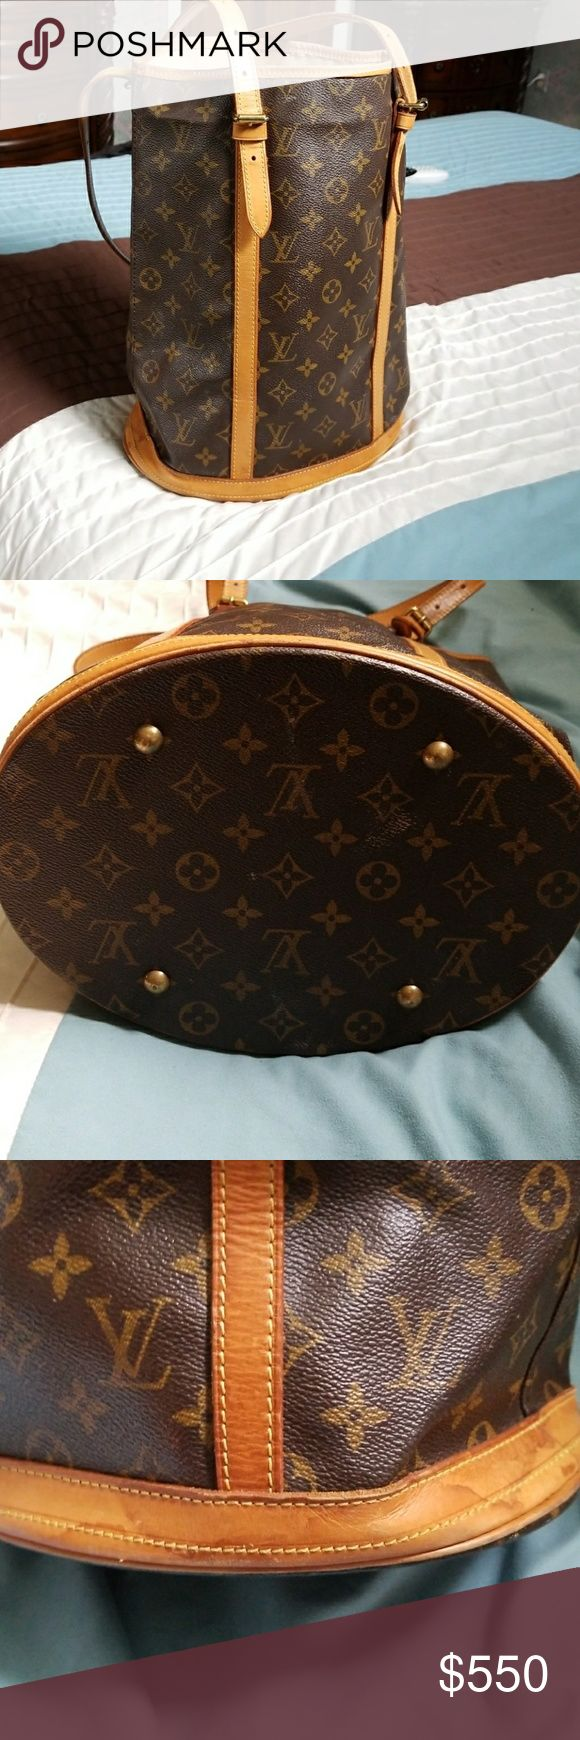 Authentic Louis vuition bucket Gm 100% vintage bucket(trade price higher)trading for another louis vuitton only Louis Vuitton Bags Totes